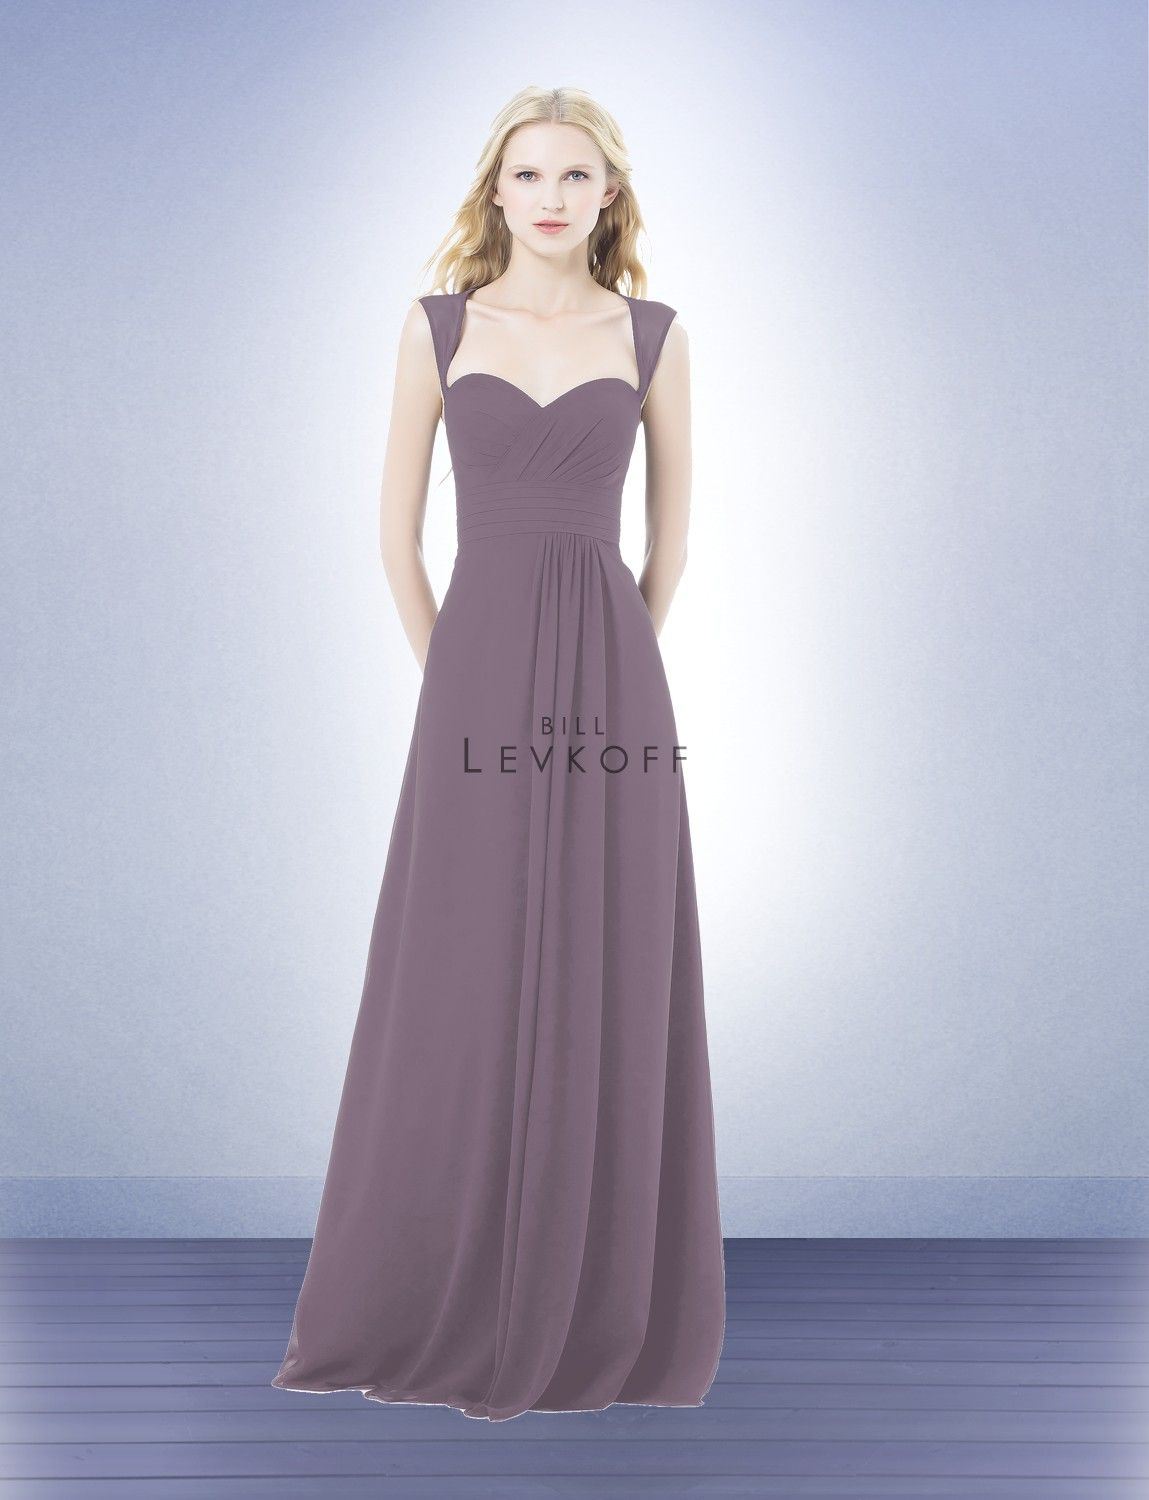 Bridesmaid dress style 485 bridesmaid dresses by bill levkoff bridesmaid dress style 485 victorian lilac bridesmaid dresses by bill levkoff again bad picture lovely dress in person ombrellifo Image collections